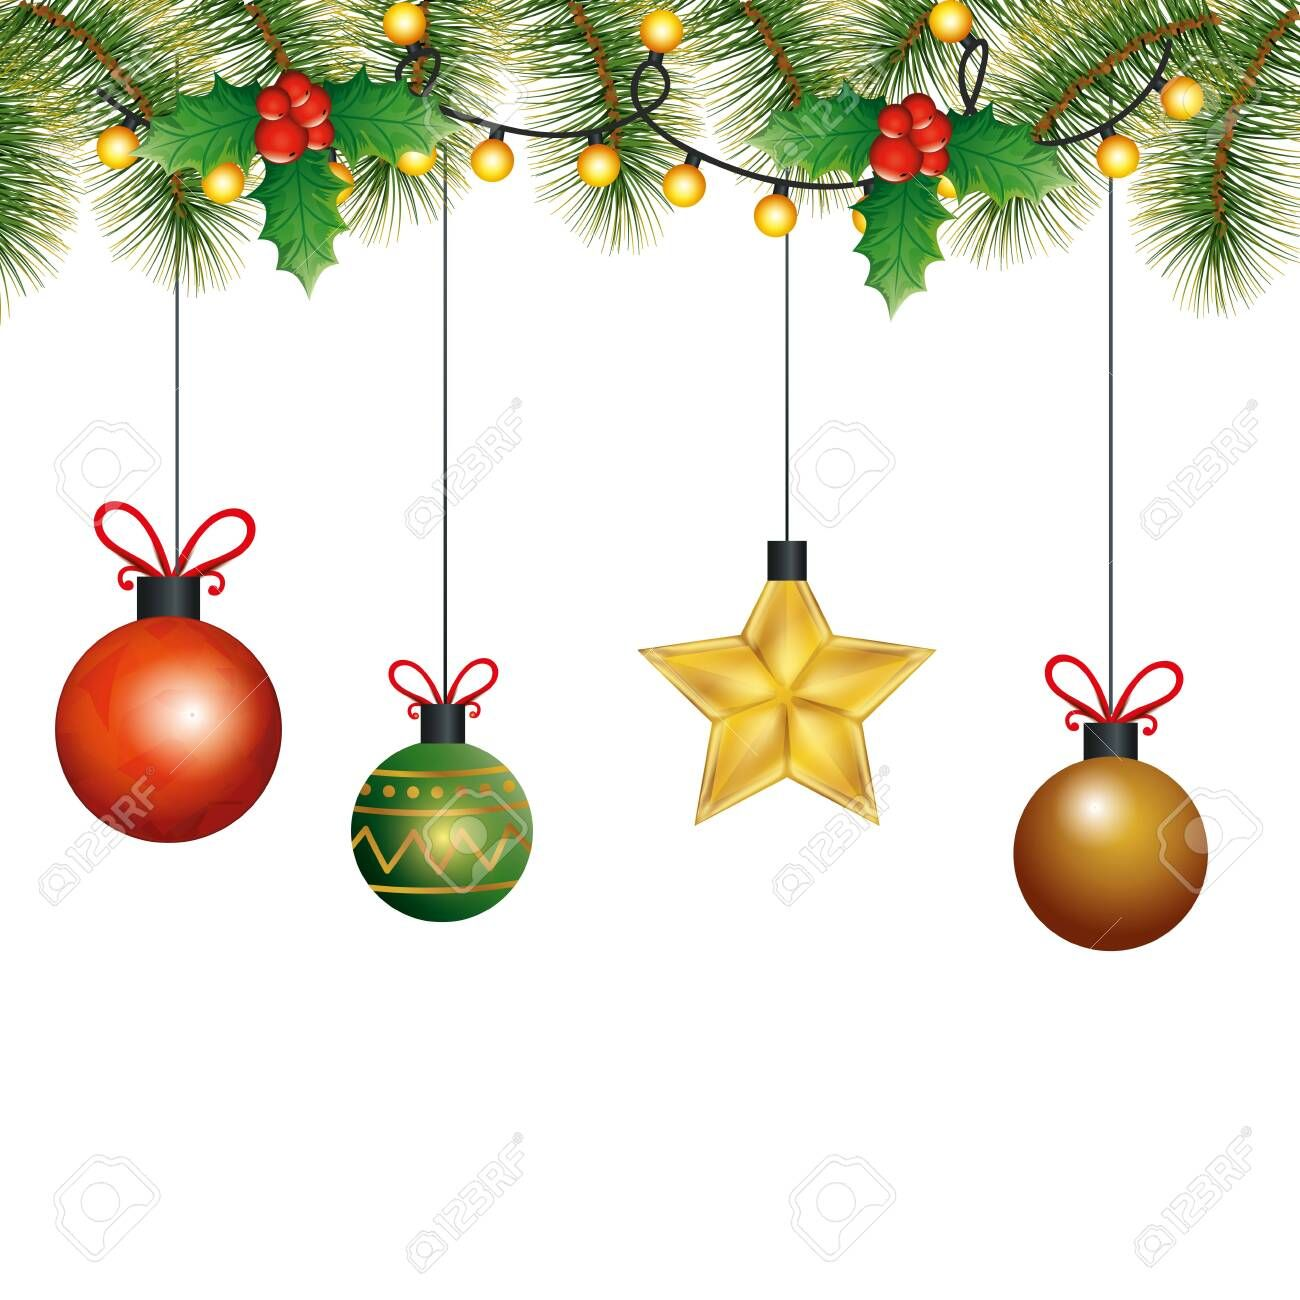 Balls With Star Hanging Christmas Decoration Vector Illustration Design Ad Hanging In 2020 Christmas Hanging Decorations Christmas Decorations Christmas Ornaments